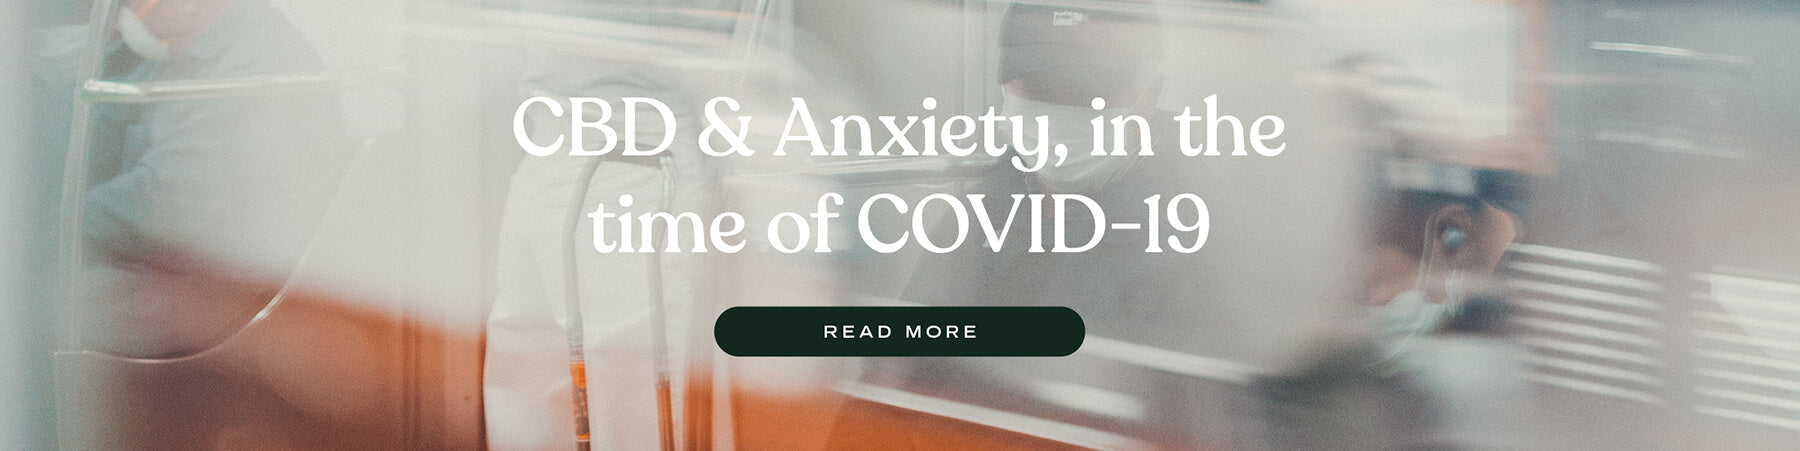 CBD and anxiety in the time of Covid 19